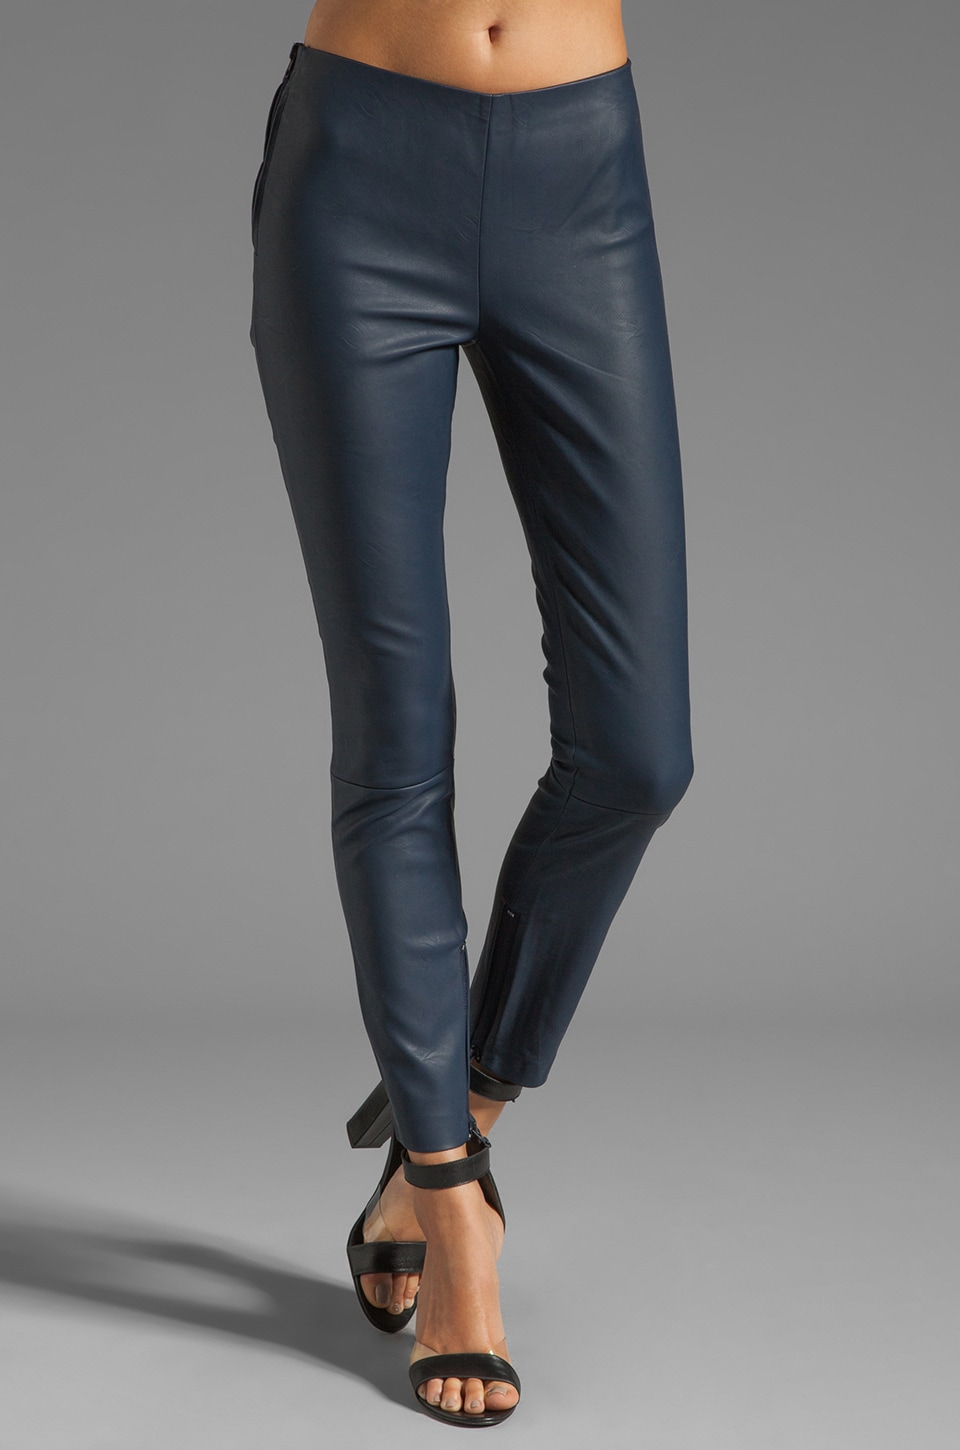 Capulet Faux Stretch Leather Pant in Navy